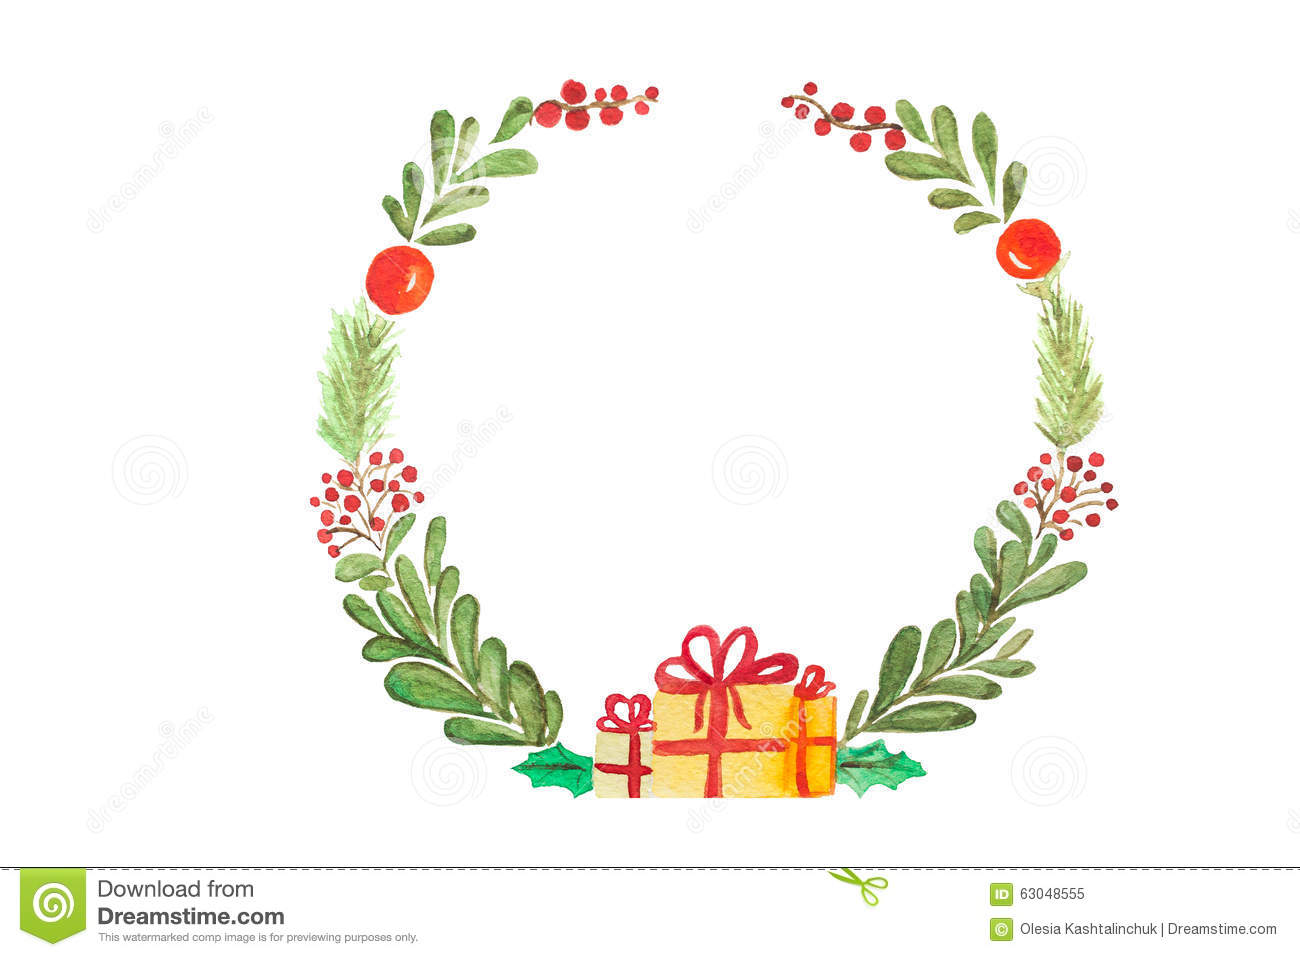 Hand Drawn Watercolor Raster Illustration. Christmas Wreath On White ...